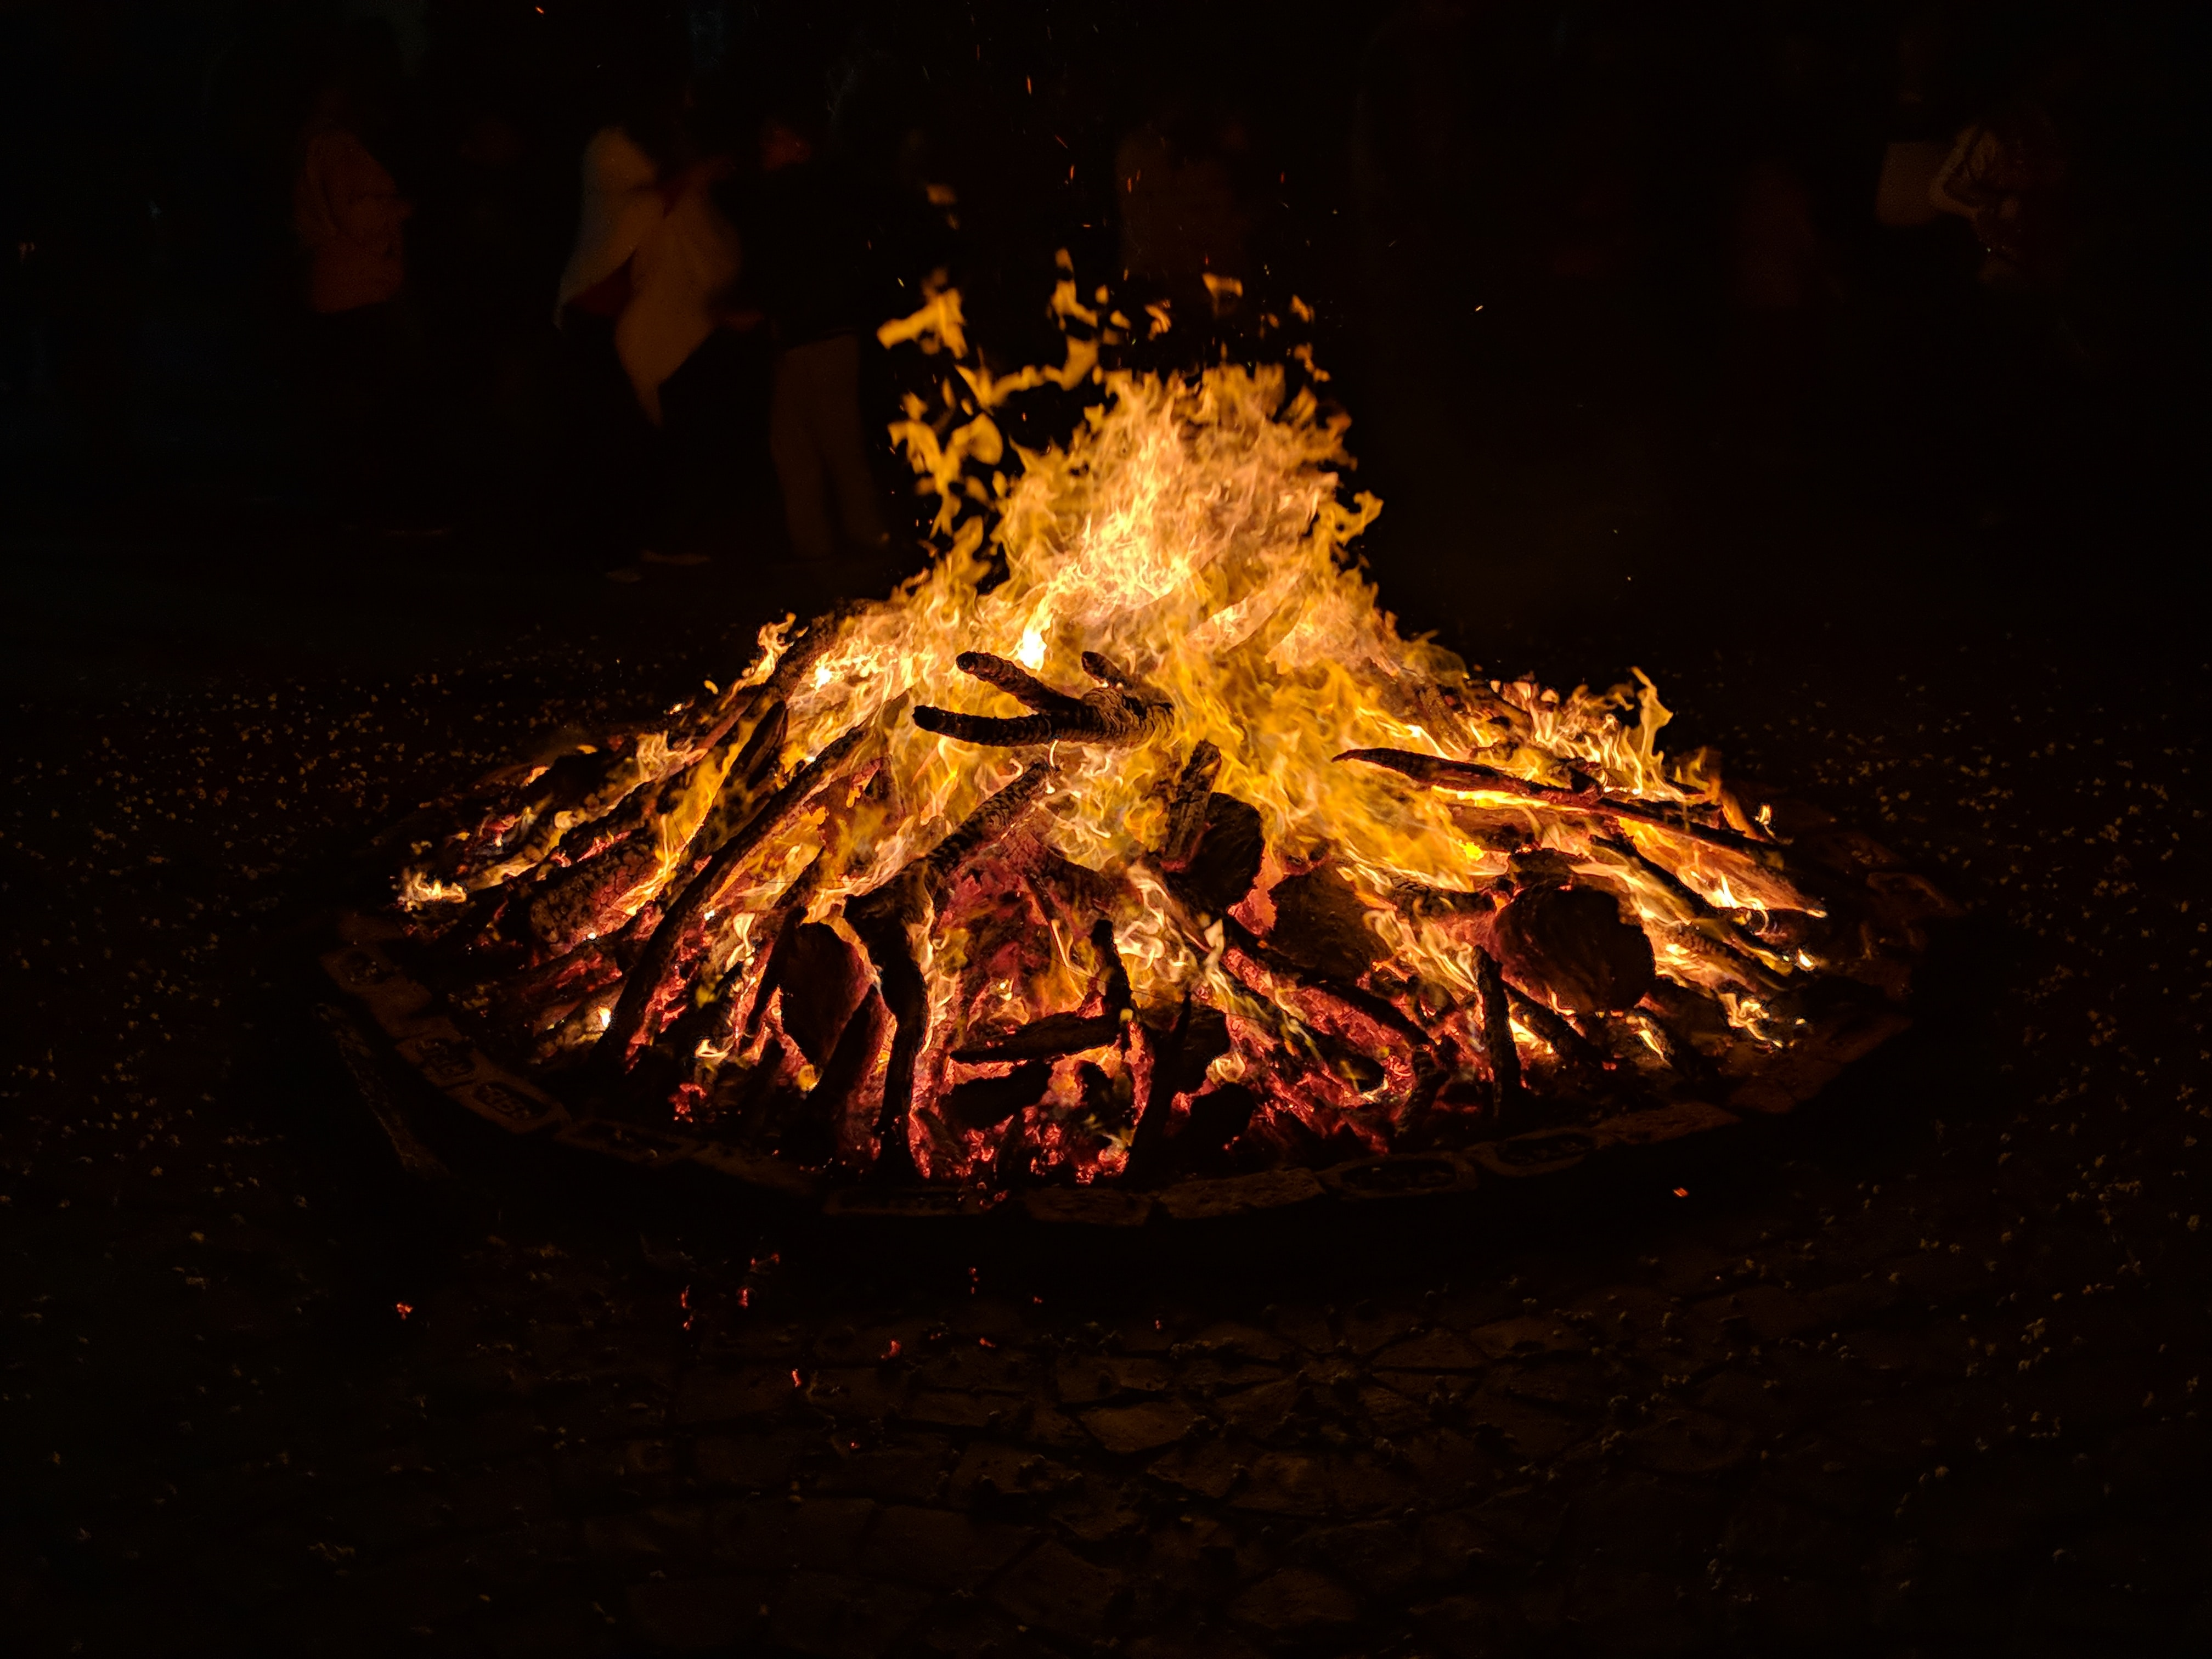 What I Learned from the Fire Pit